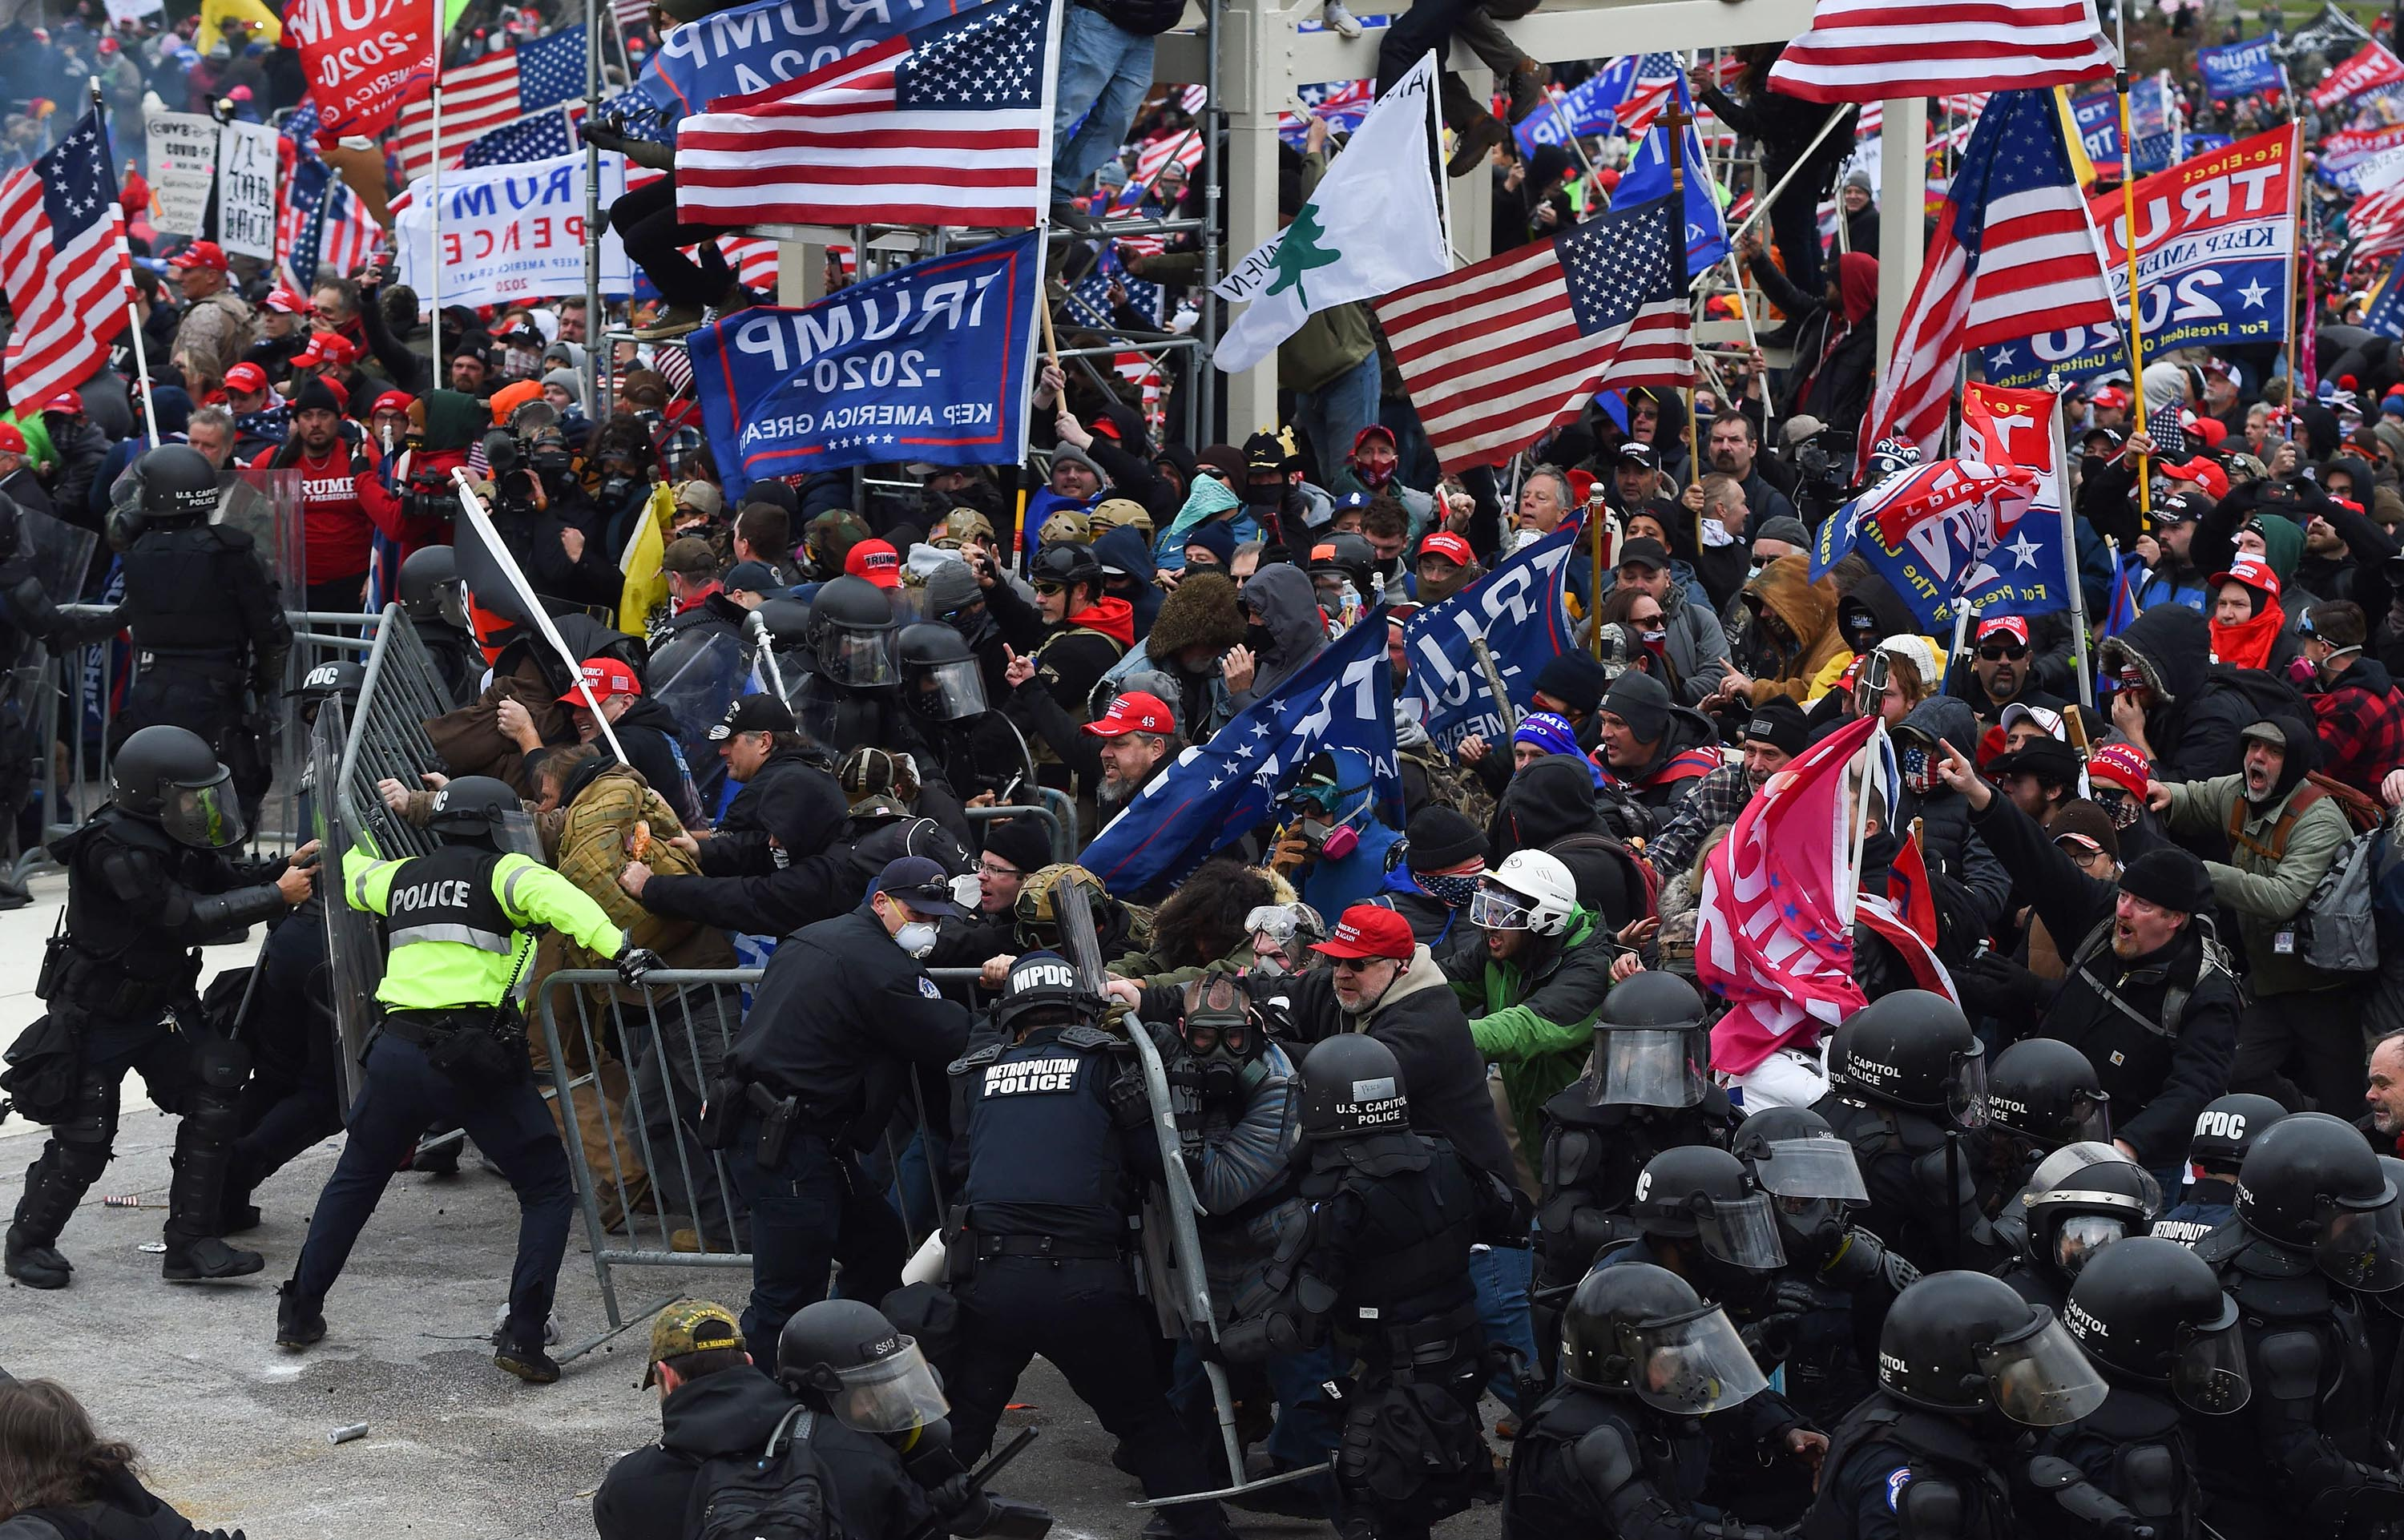 Capitol riot investigators narrow in on extremist groups and military-style coordination